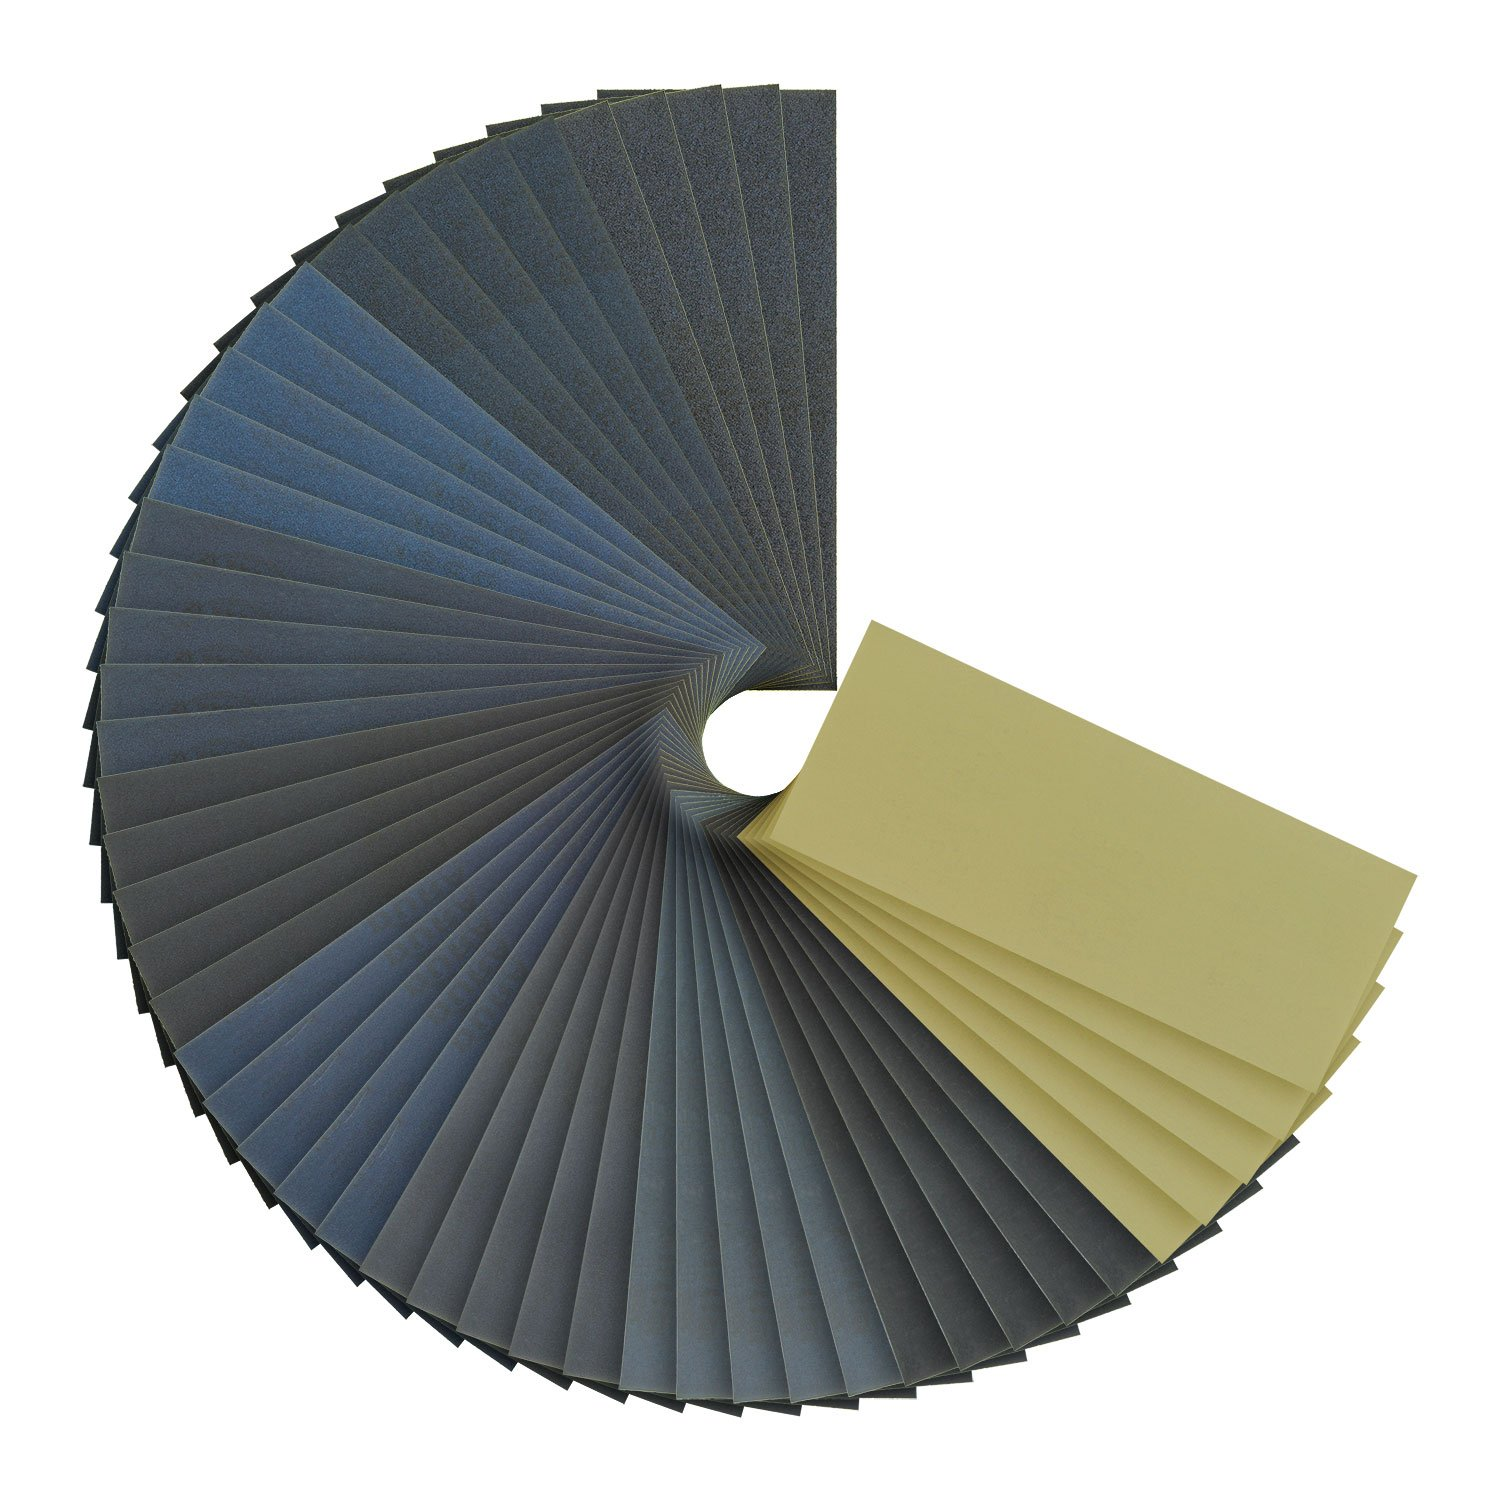 Dura-Gold - Premium - Wet or Dry - Variety Pack - 3-2/3'' x 9'' Sheets - 5-each of (150, 220, 320, 400, 600, 800, 1000, 1500, 2000, 3000) Automotive Woodworking - Box of 50 Sandpaper Finishing Sheets